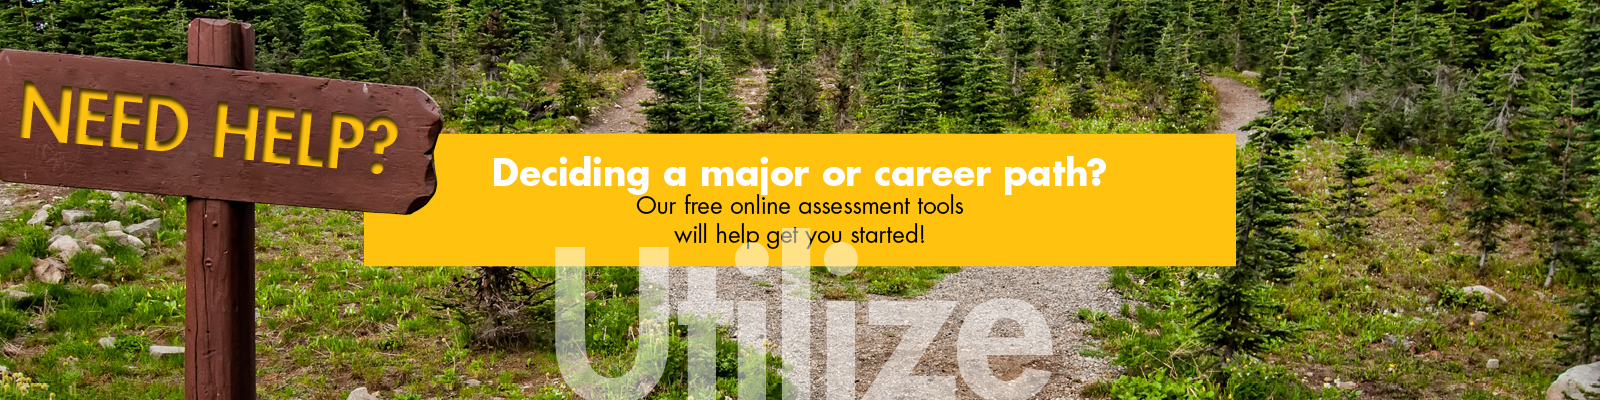 Deciding a major or career path? Our free online assessment tools will help you get started!